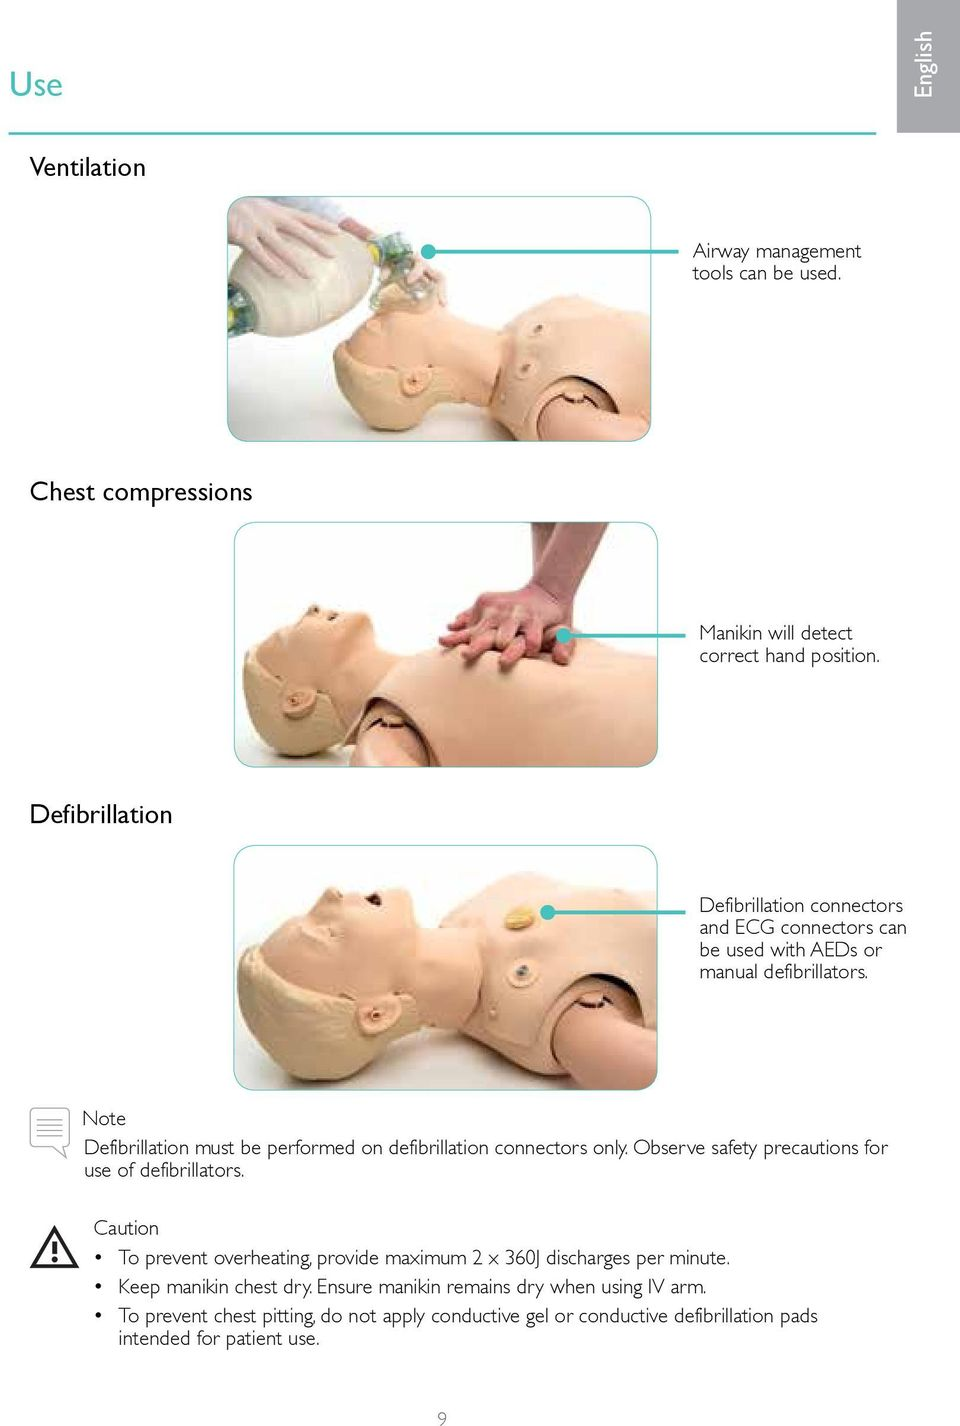 Note Defibrillation must be performed on defibrillation connectors only. Observe safety precautions for use of defibrillators.